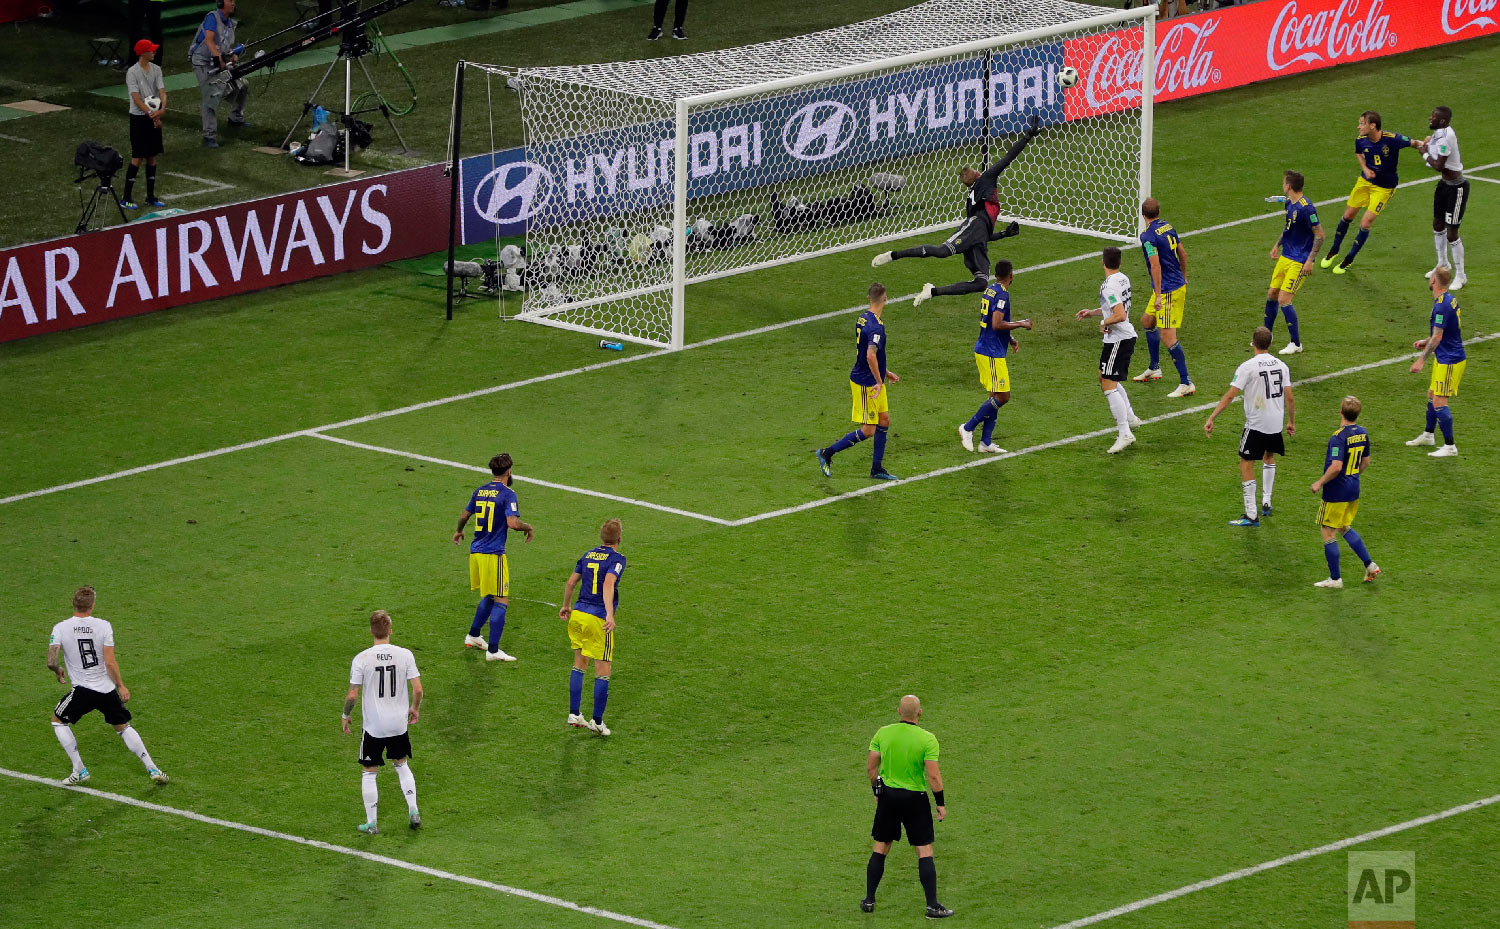 Germany's Toni Kroos, far left, scores his side's second goal during the group F match between Germany and Sweden at the 2018 soccer World Cup in the Fisht Stadium in Sochi, Russia on June 23, 2018. (AP Photo/Sergei Grits)